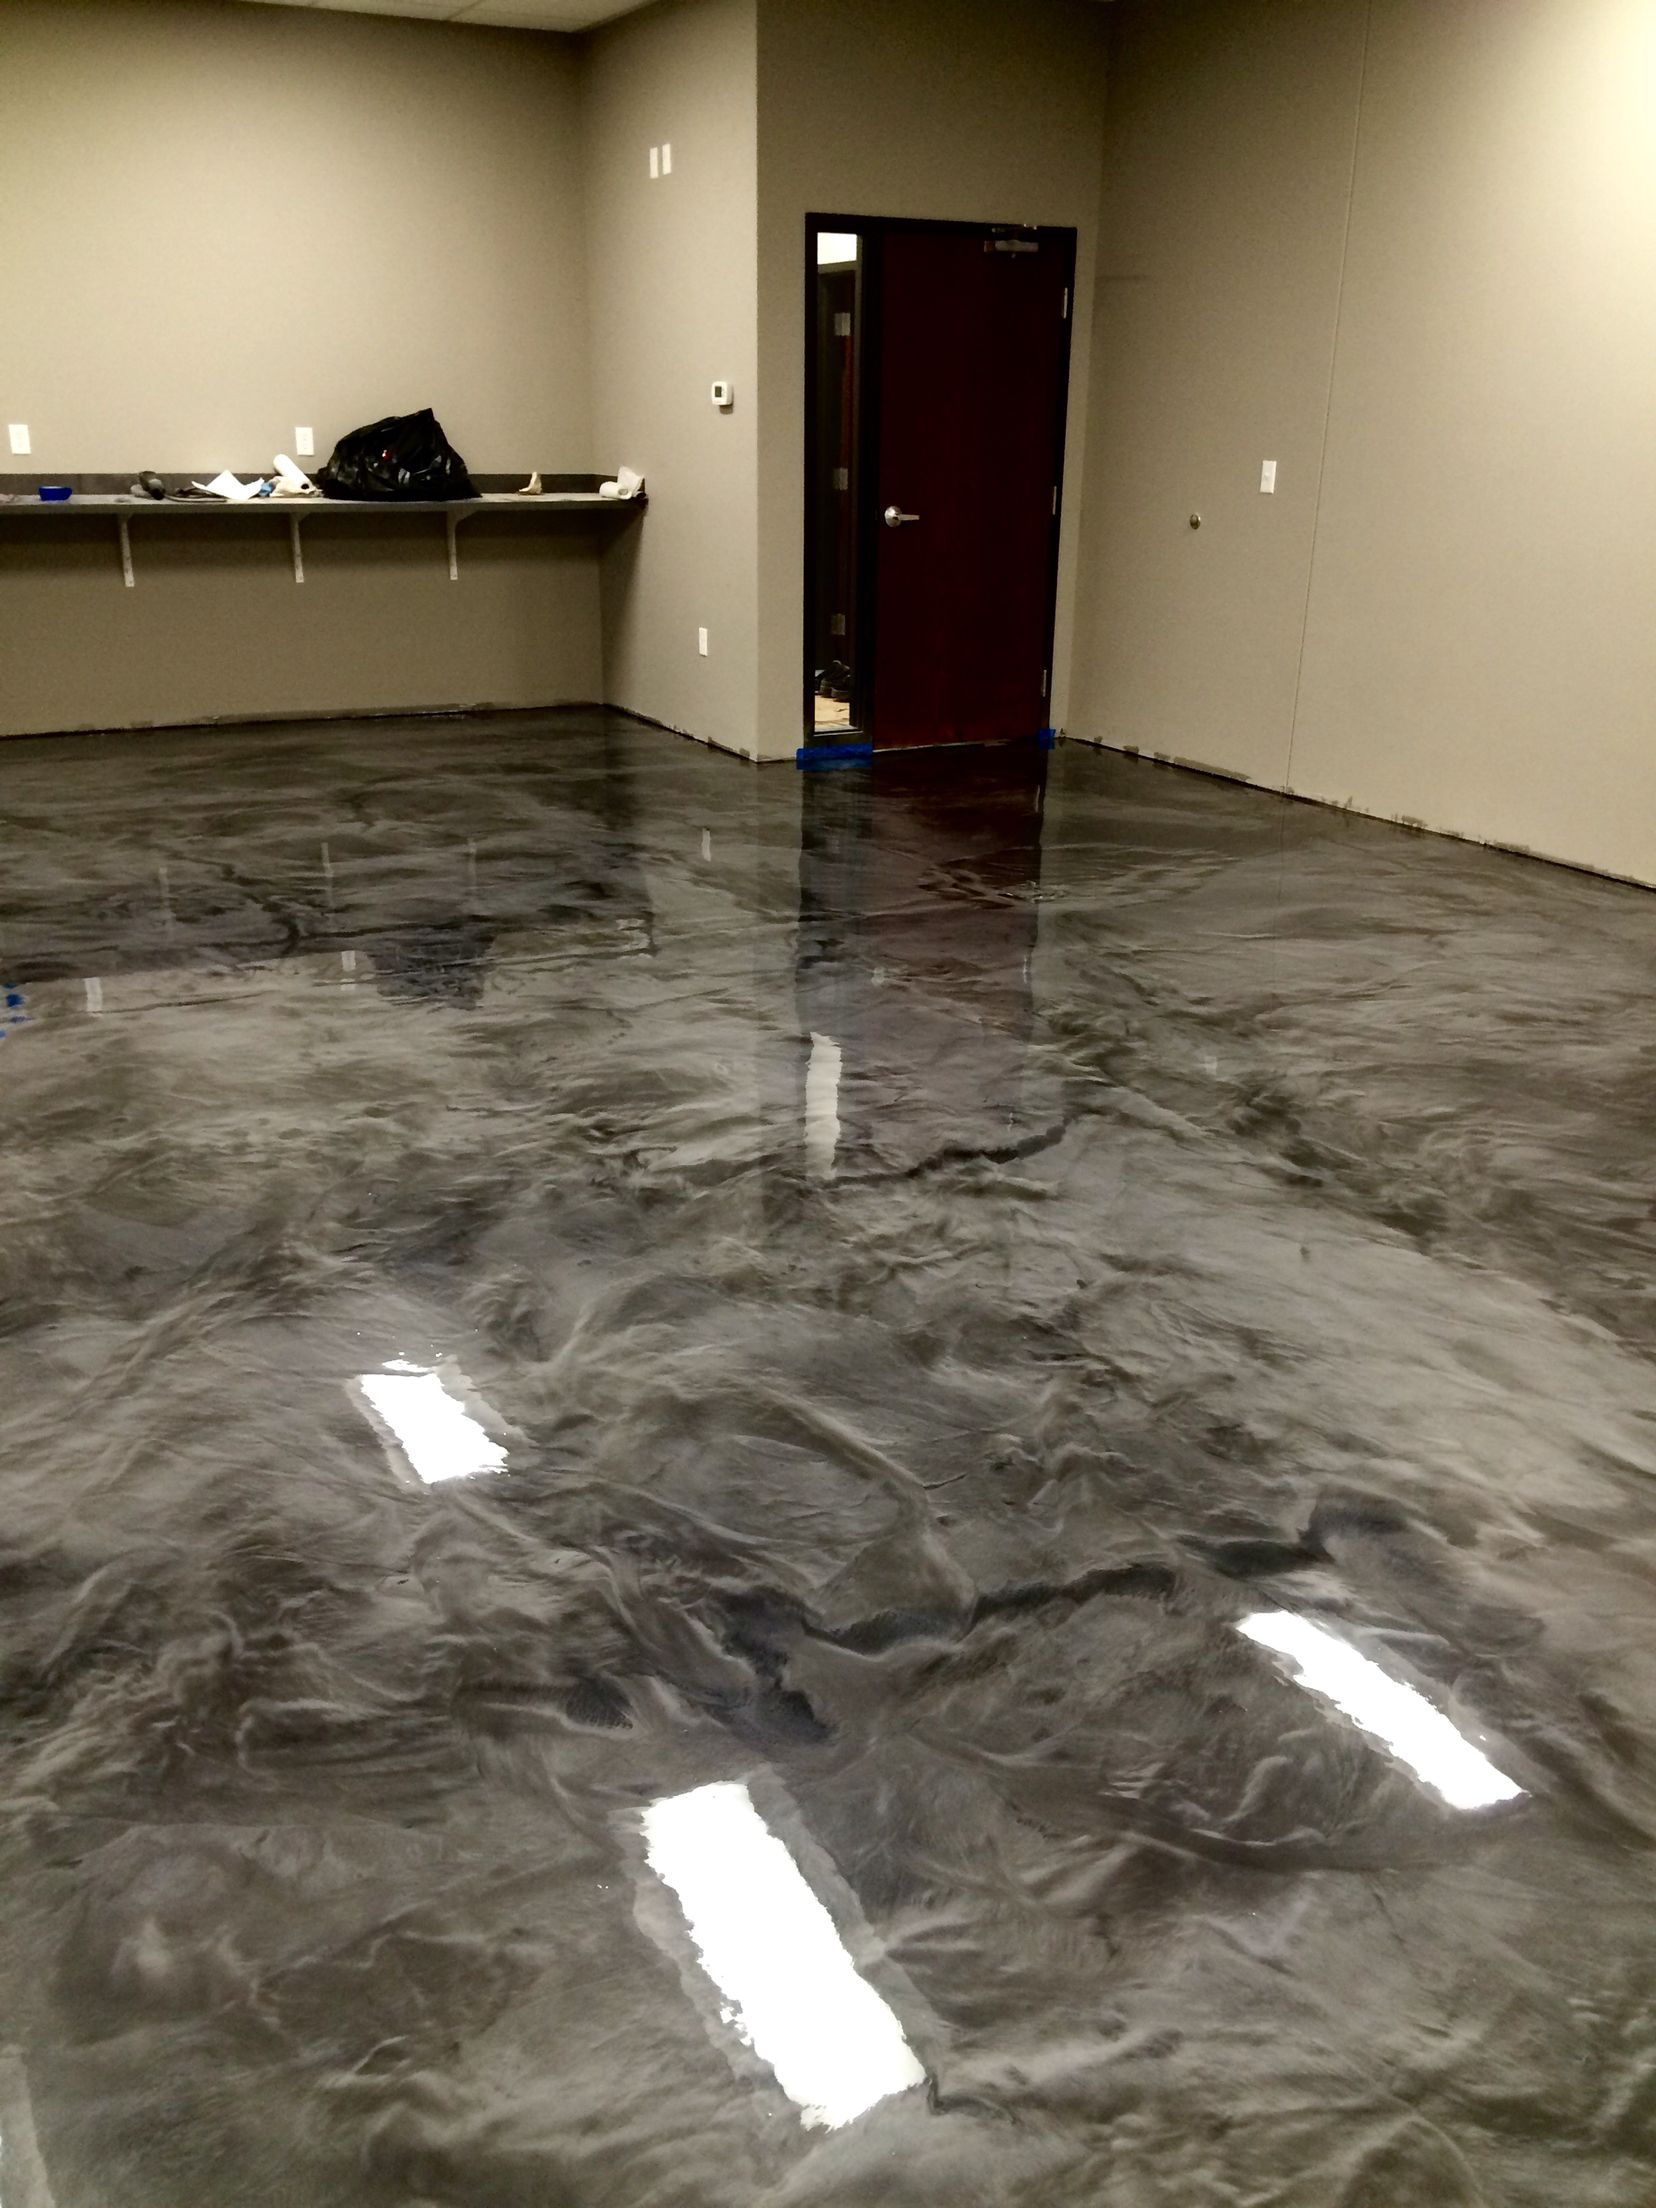 Metallic Epoxy Floor Coatings By Sierra Concrete Arts Metallic Epoxy Floor Epoxy Floor Concrete Floor Coatings